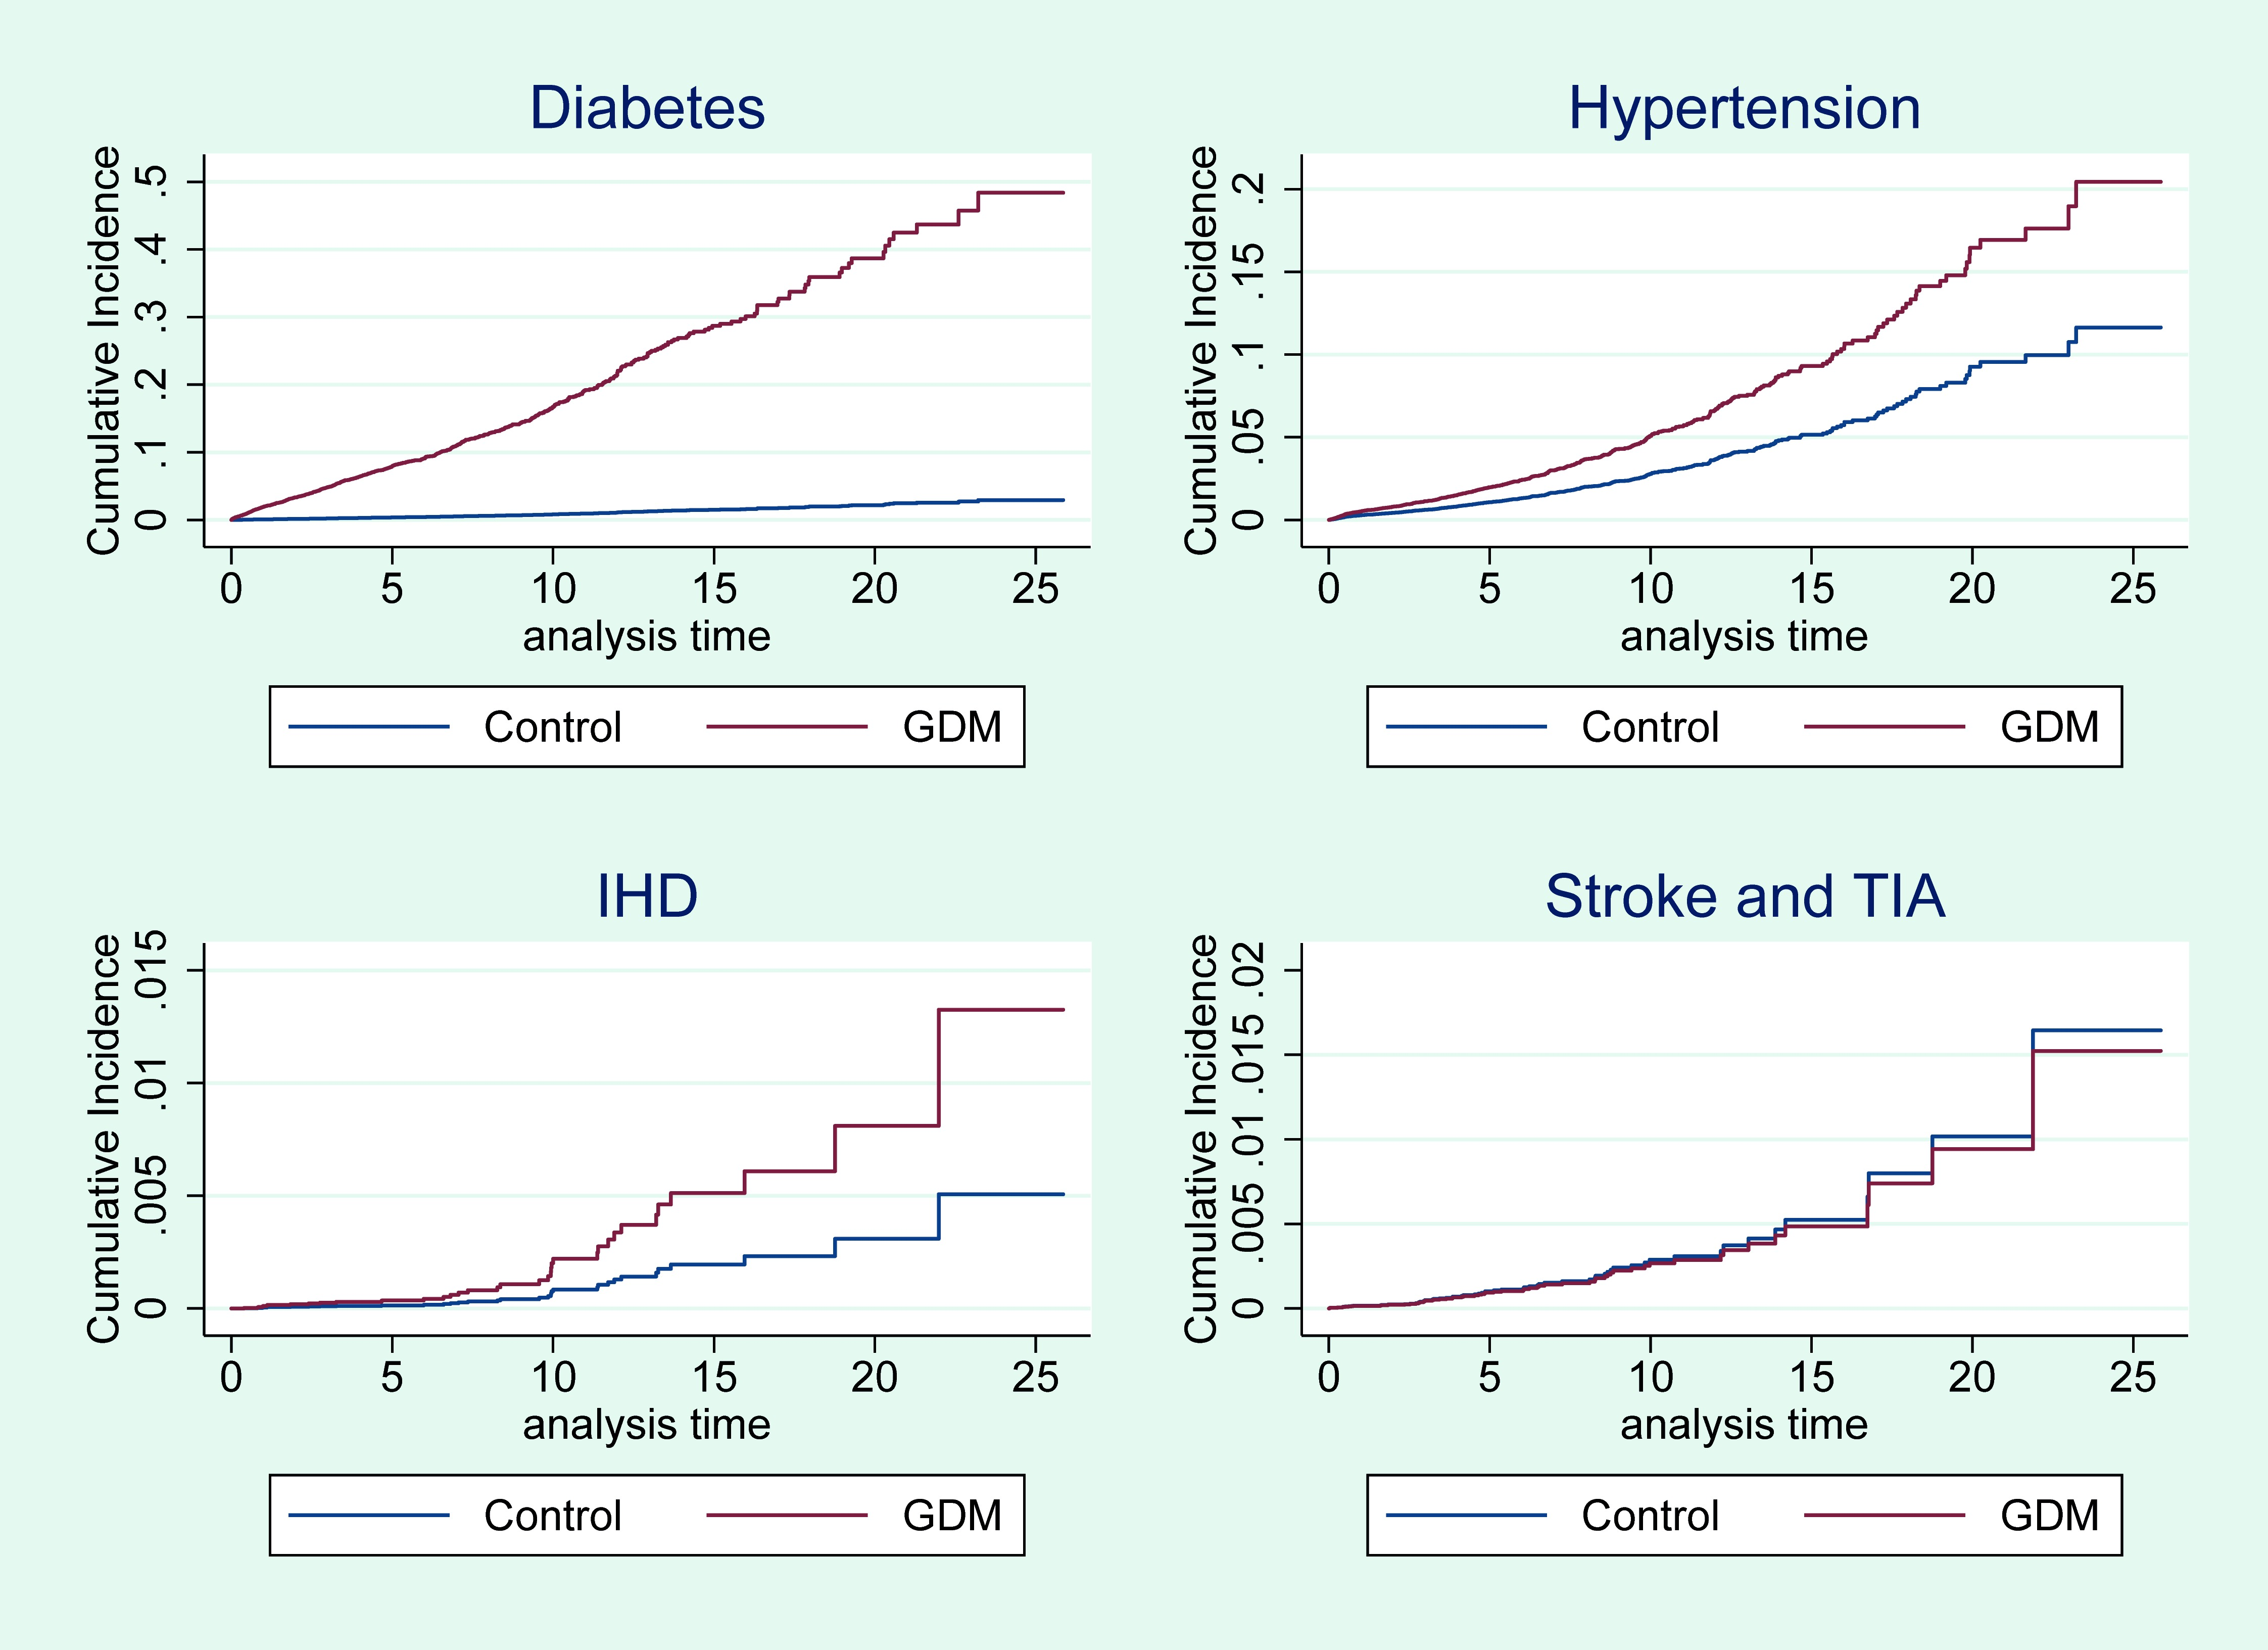 Cumulative incidence of diabetes, hypertension, IHD, and stroke or TIA for women with GDM and control women.